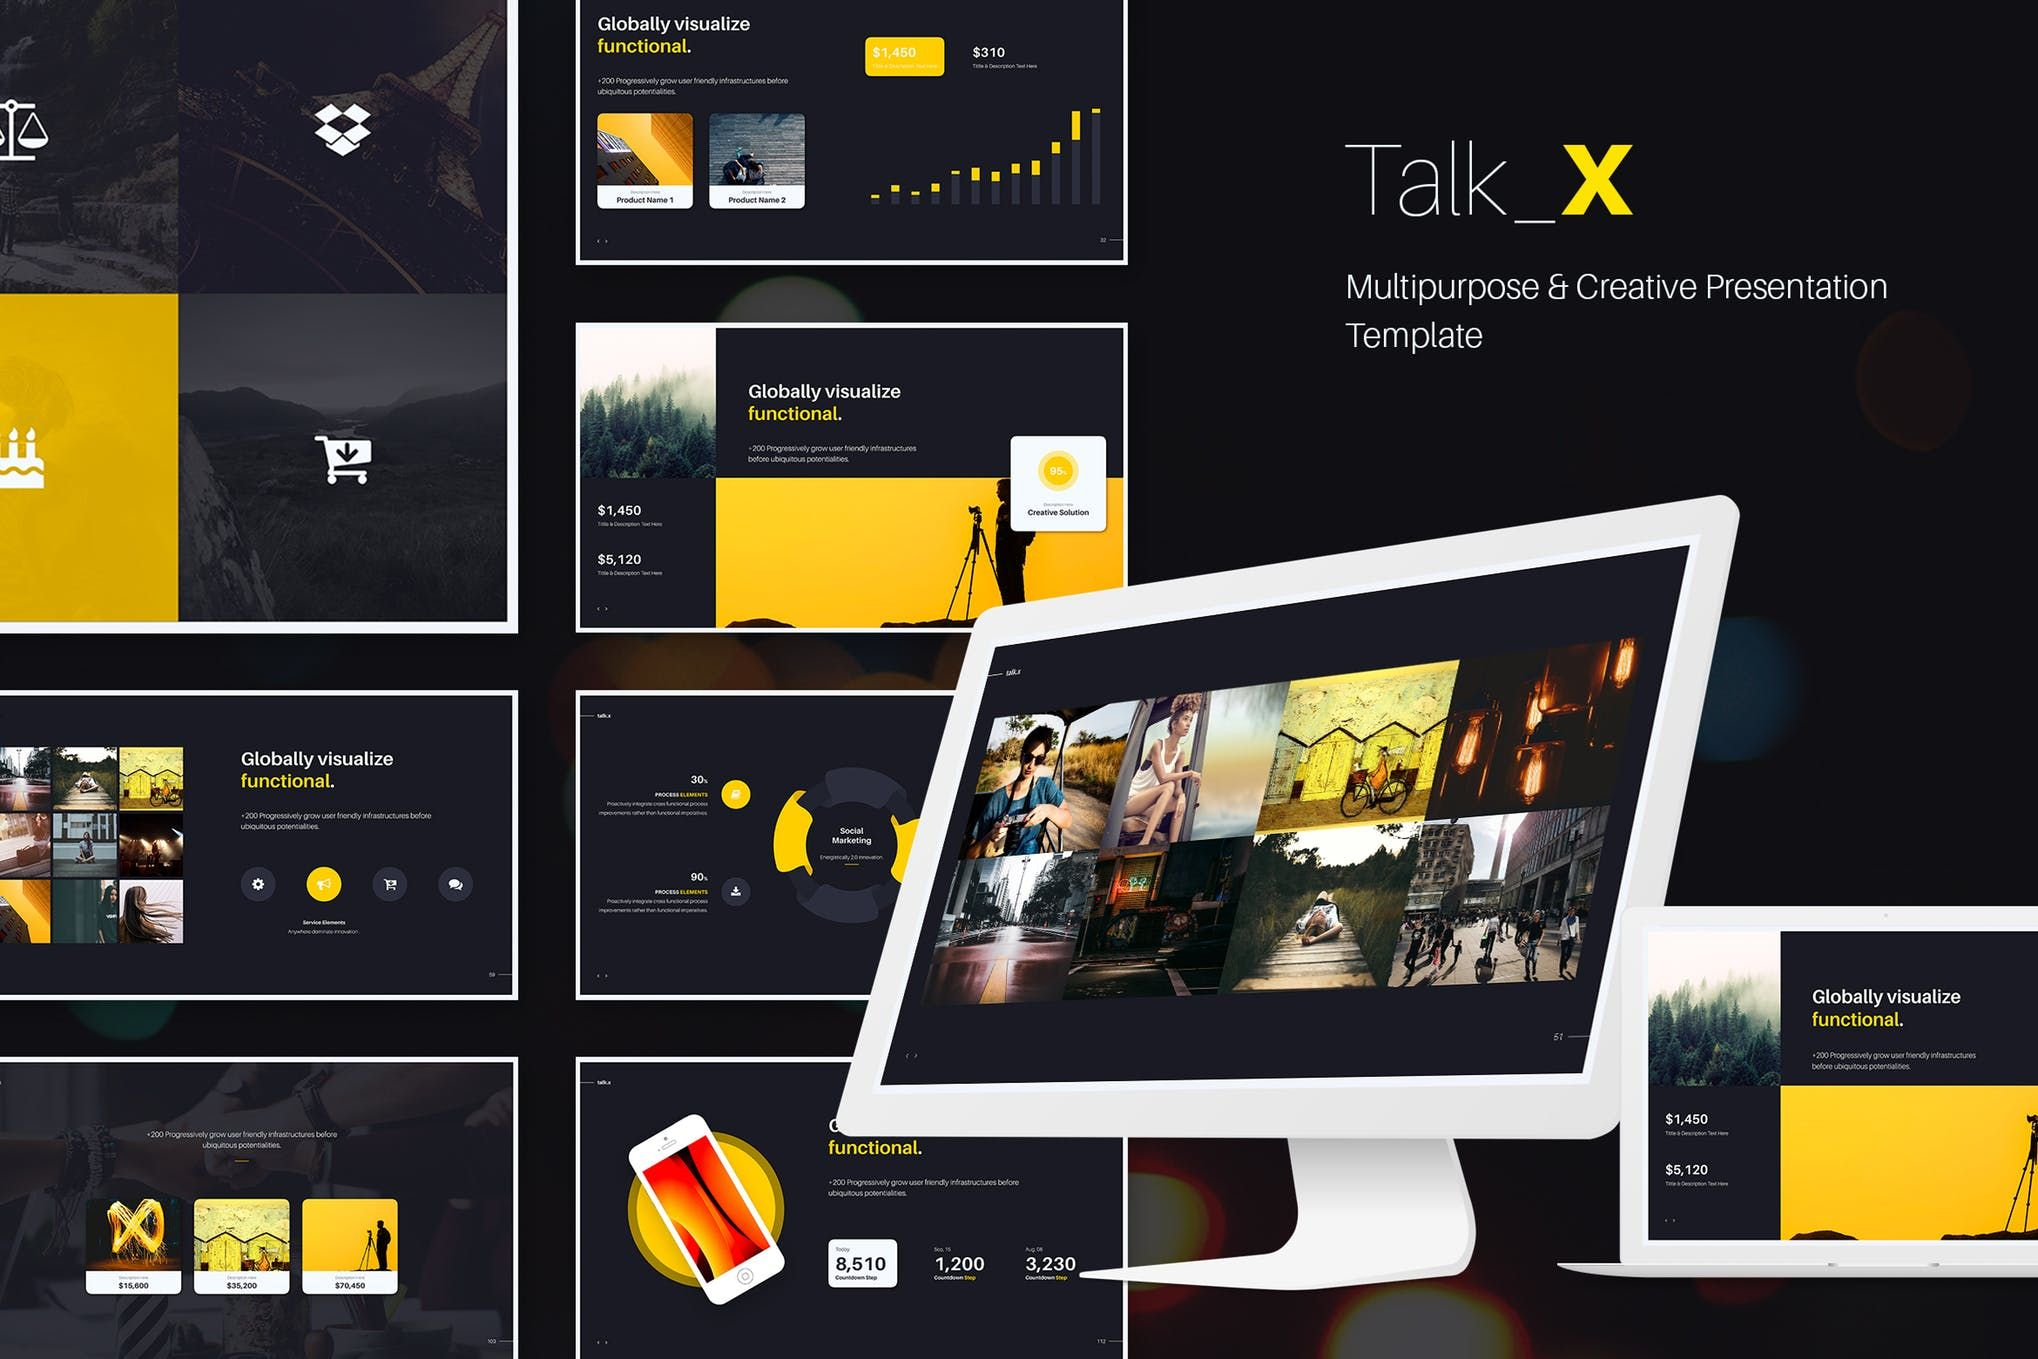 talkx multipurpose template powerpoint download here https